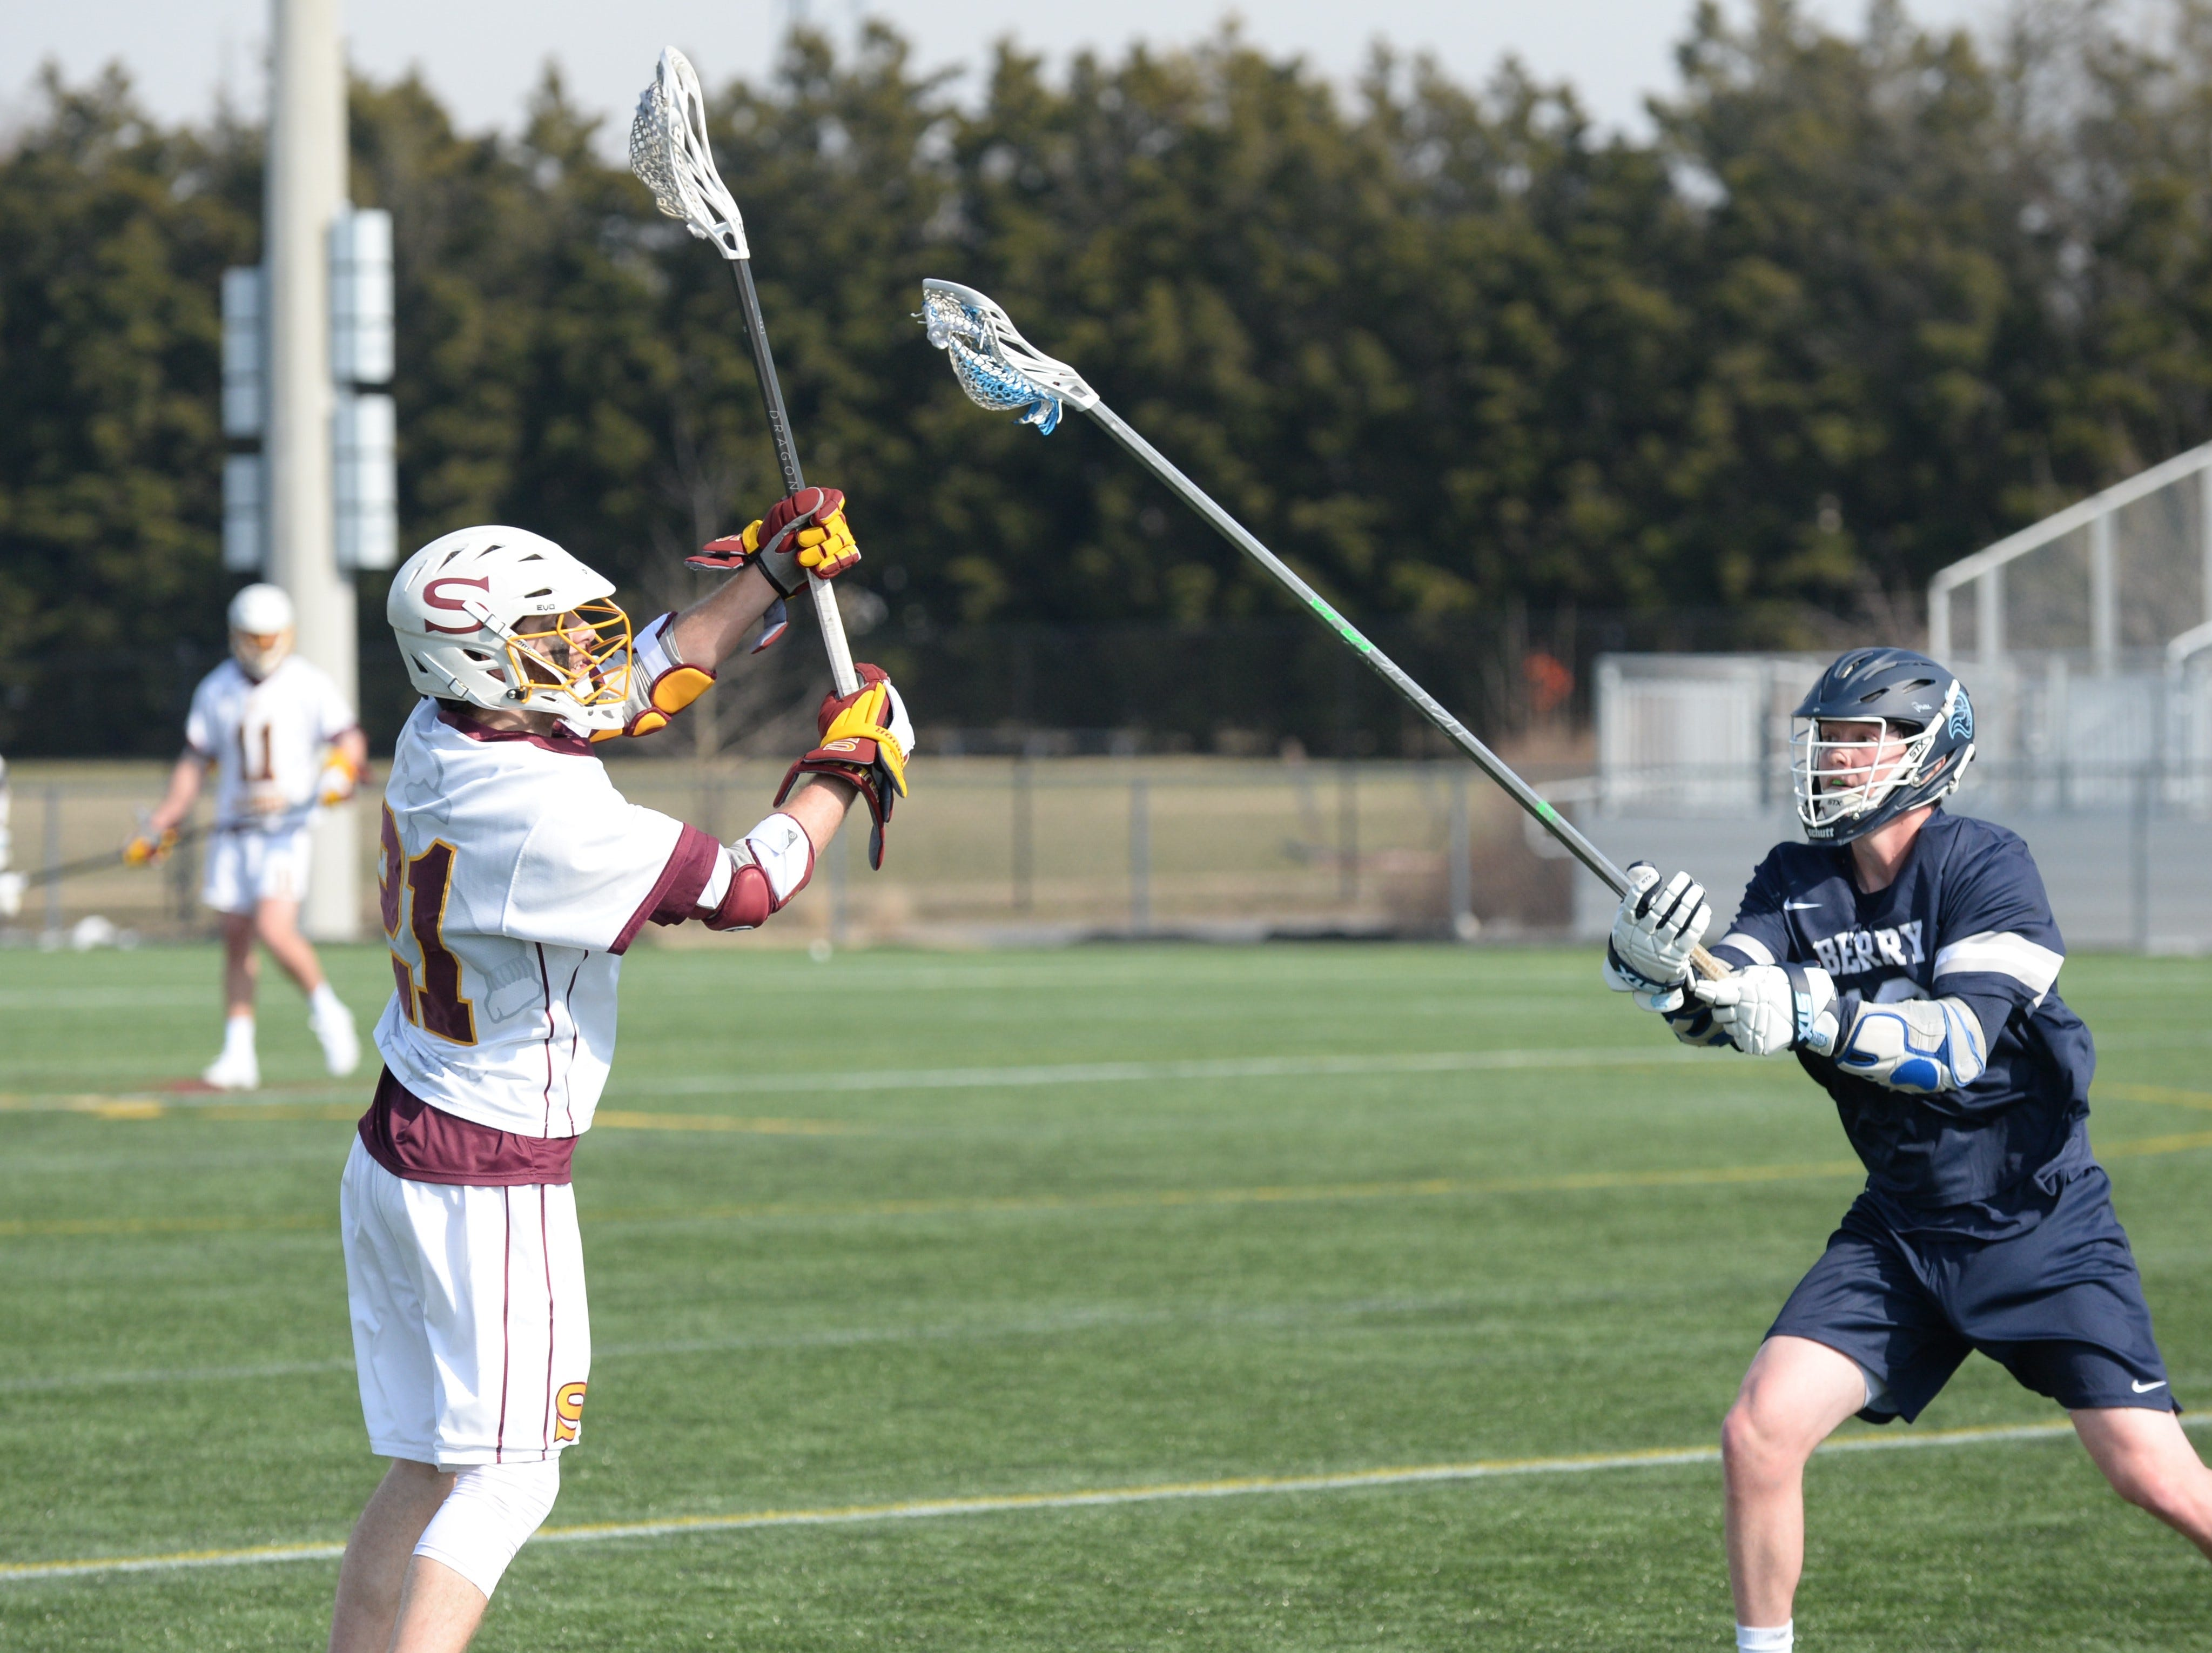 Salisbury University's Josh Melton passes against a Berry College defender on Sunday, Feb. 3, 2019.